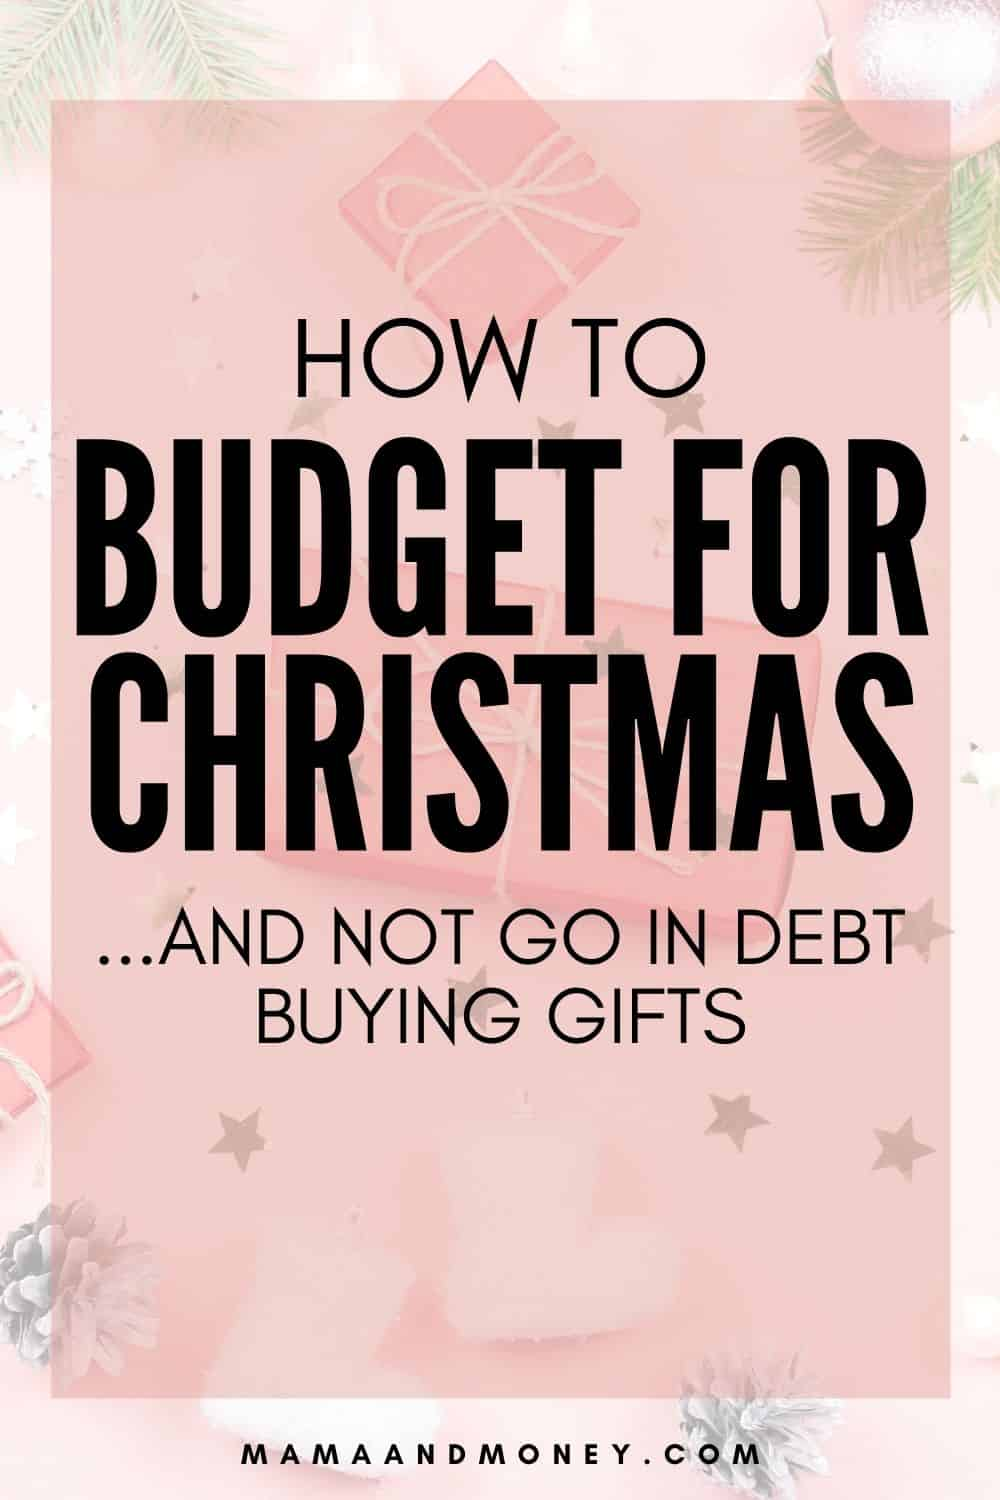 how to budget for Christmas gifts